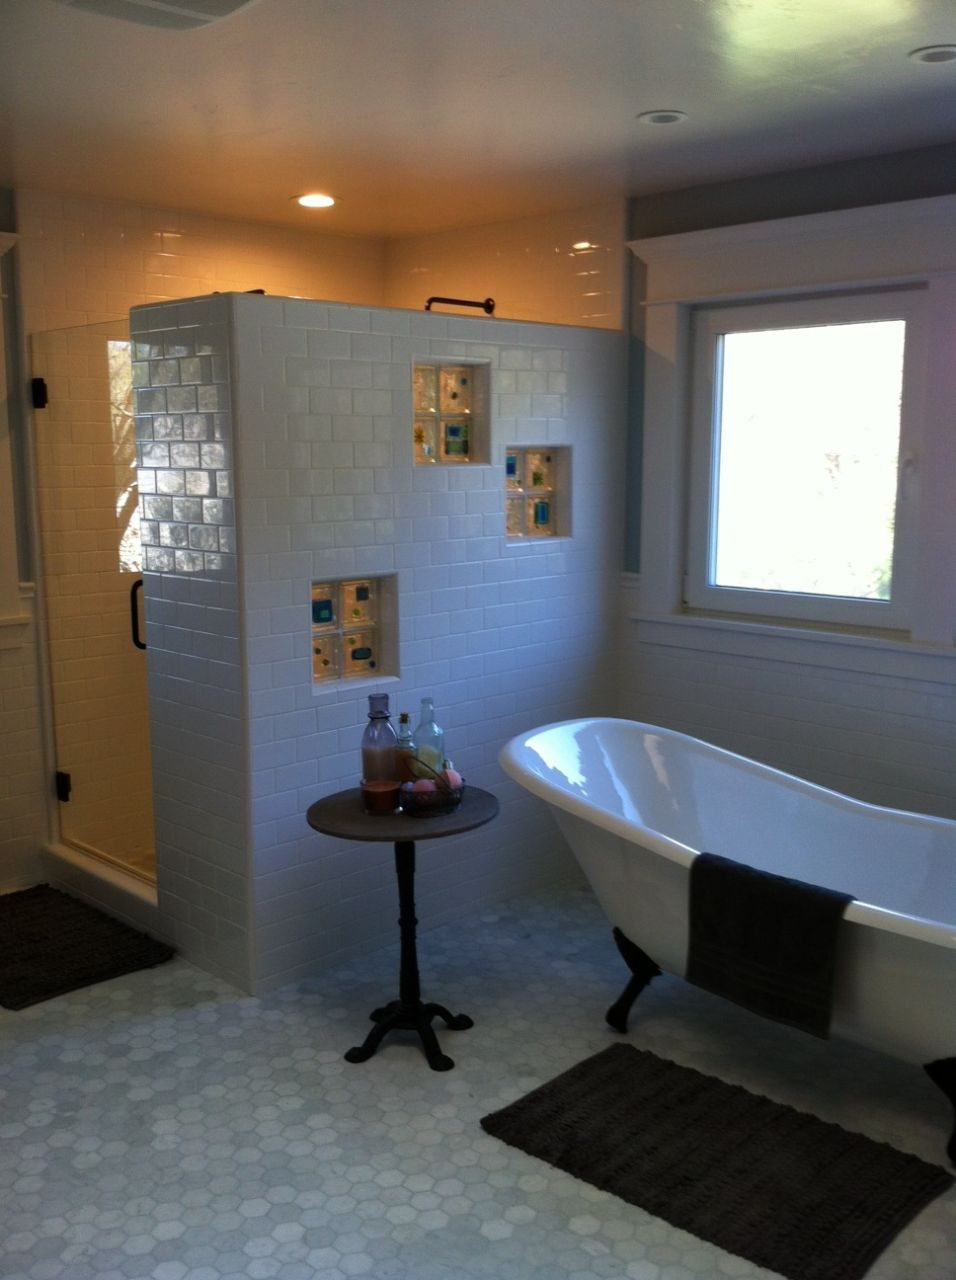 California bath remodel pedestal tub glass tile blocks - Small bathroom remodel with tub ...